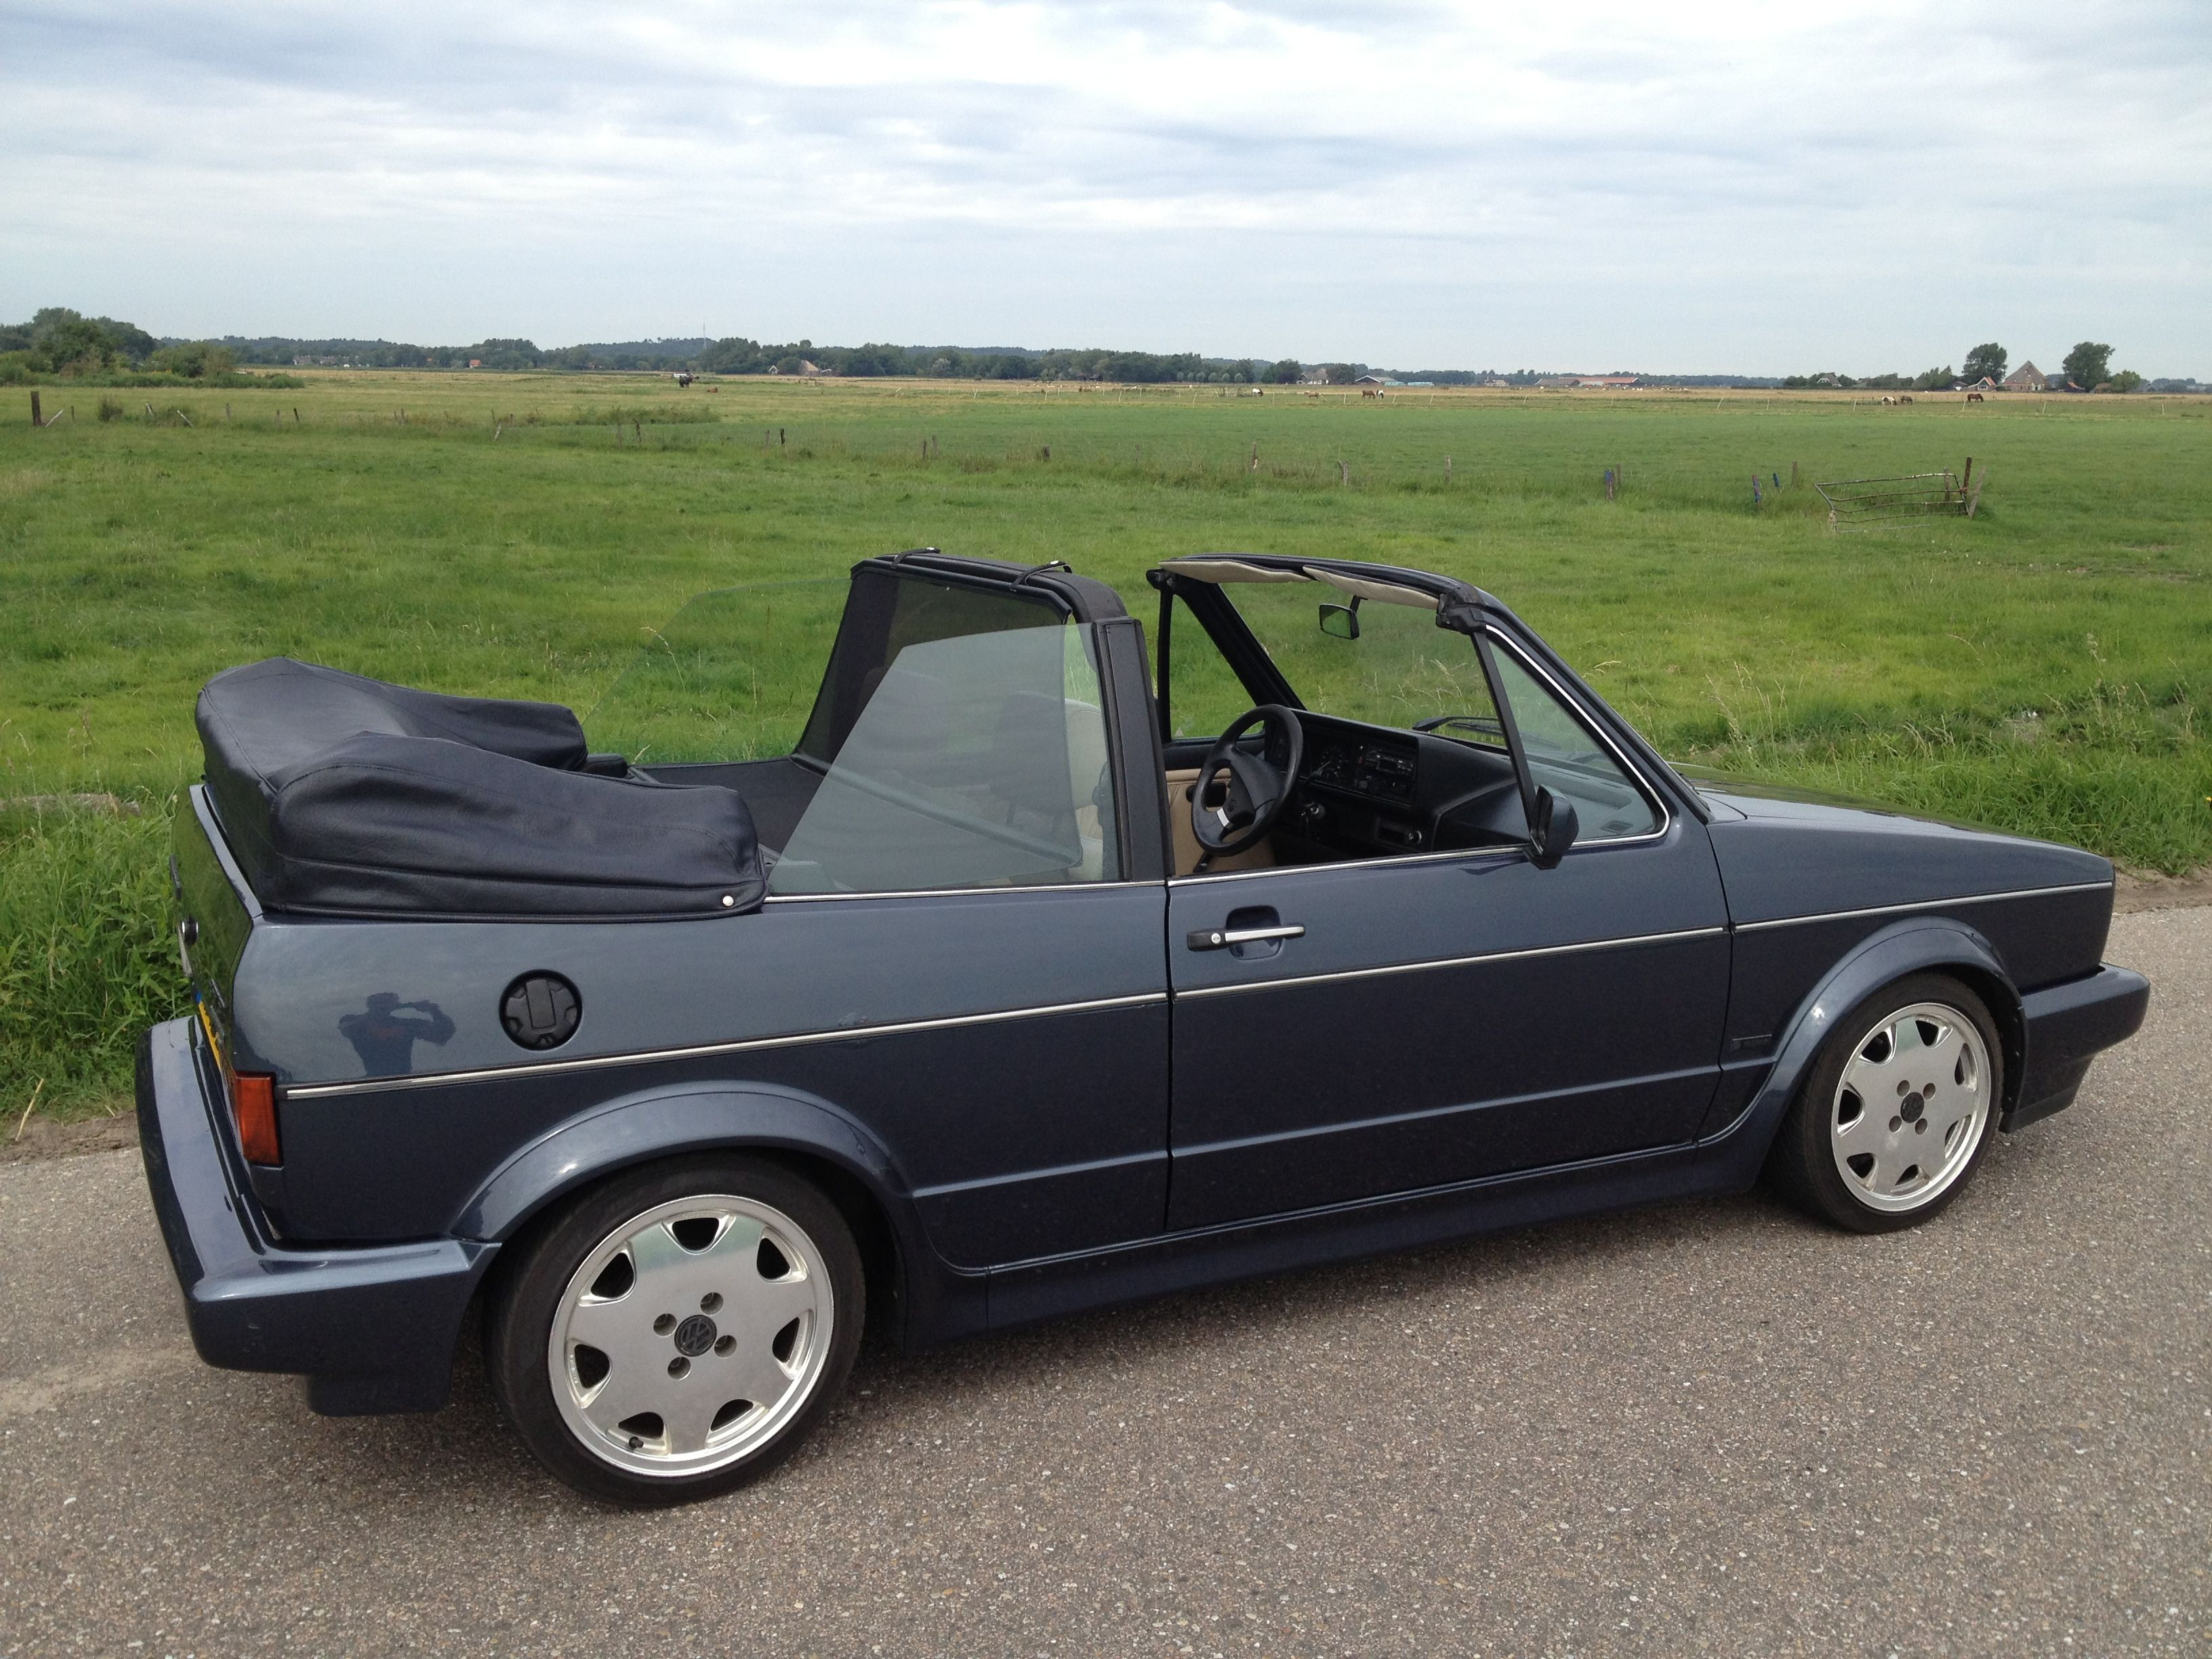 cabrio helios blue wv golf mk1 pinterest mk1 vw golf cabrio and vw. Black Bedroom Furniture Sets. Home Design Ideas